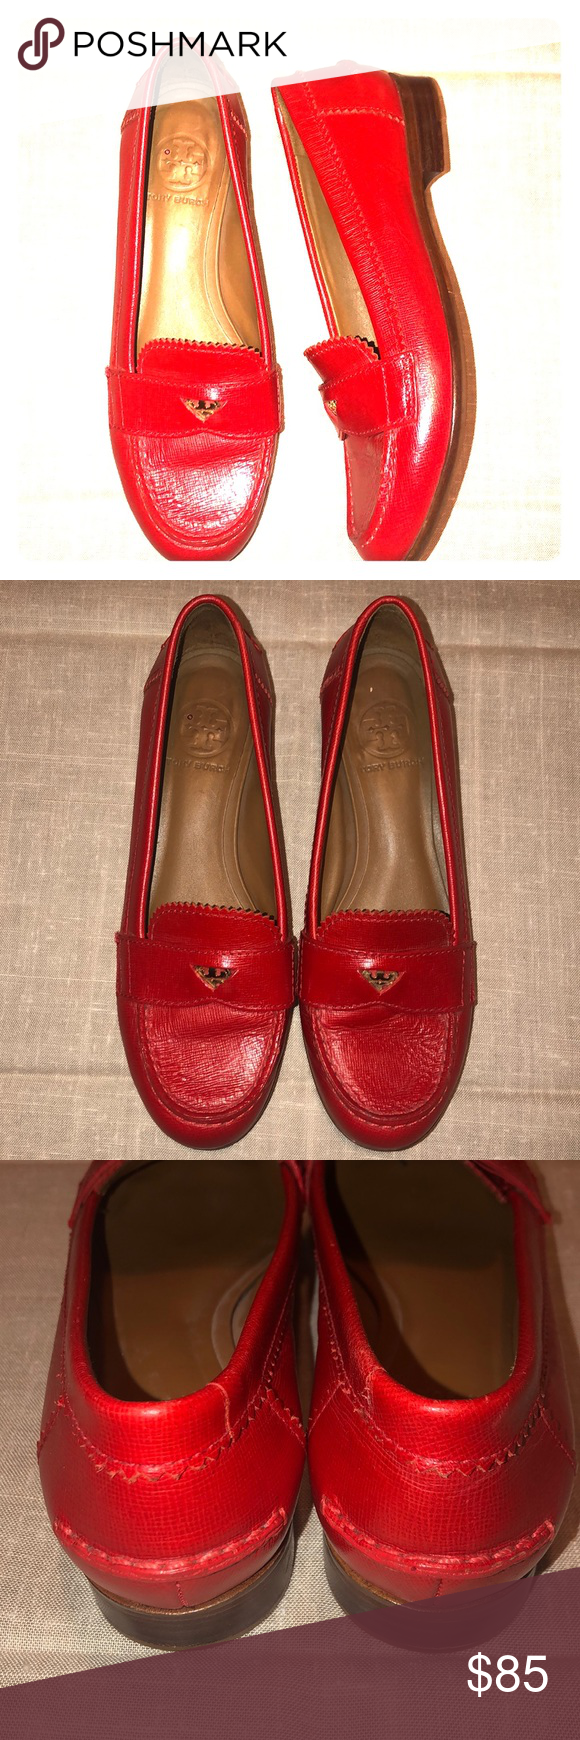 0f382e704d6 Tory Burch Red Medallion Logo Penny Loafer 7.5M Tory super cute Saffiano  leather textured penny